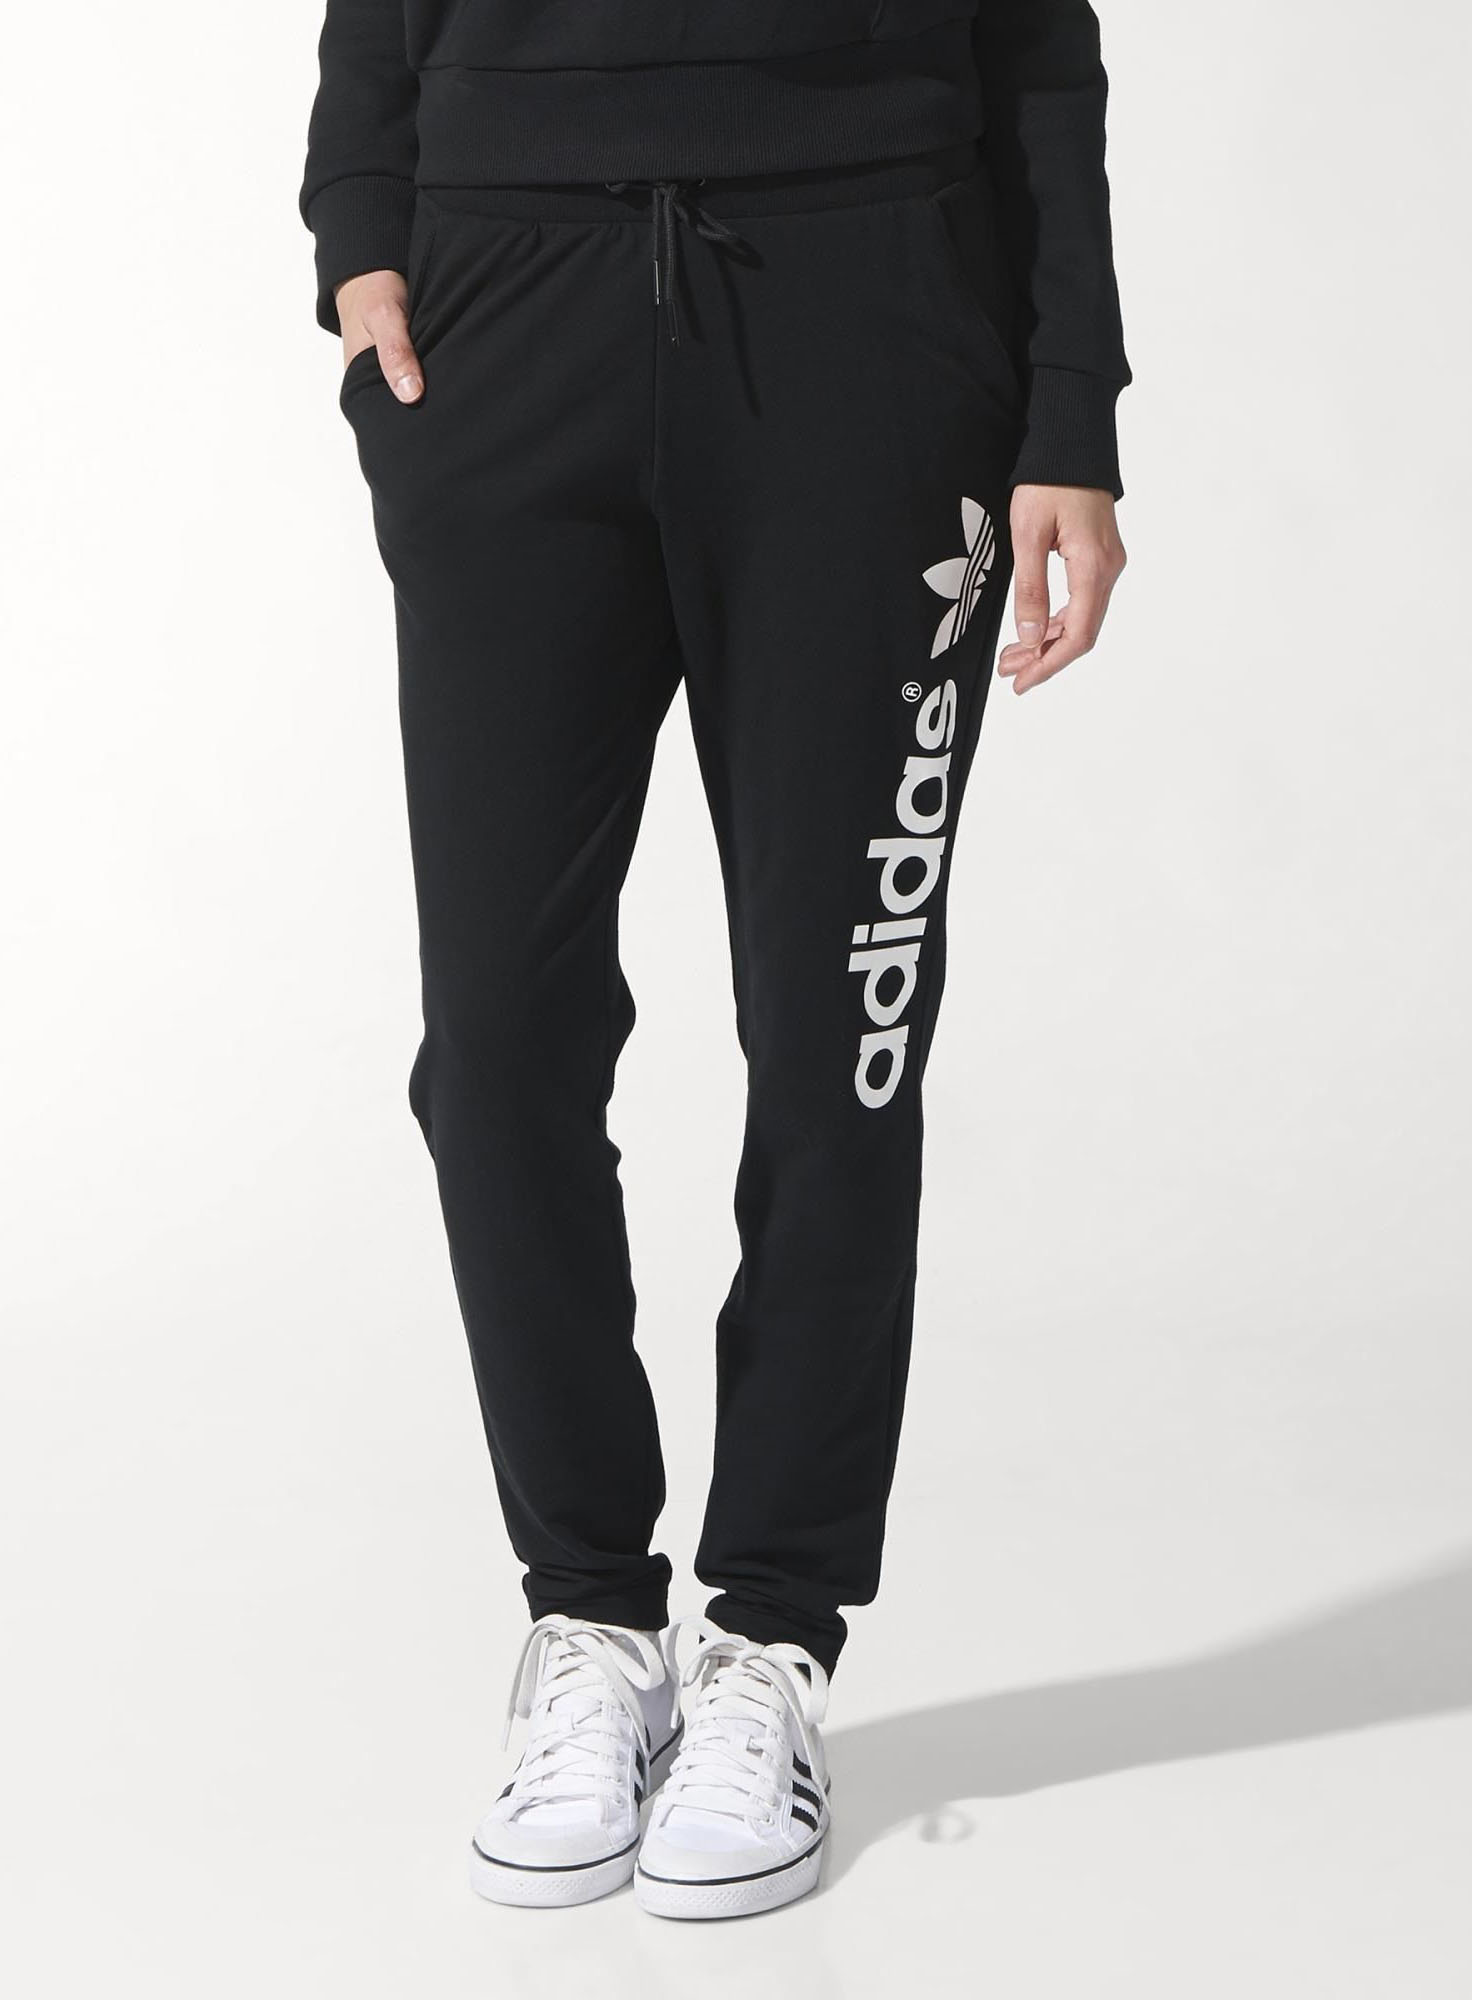 jack and jones joggers size guide